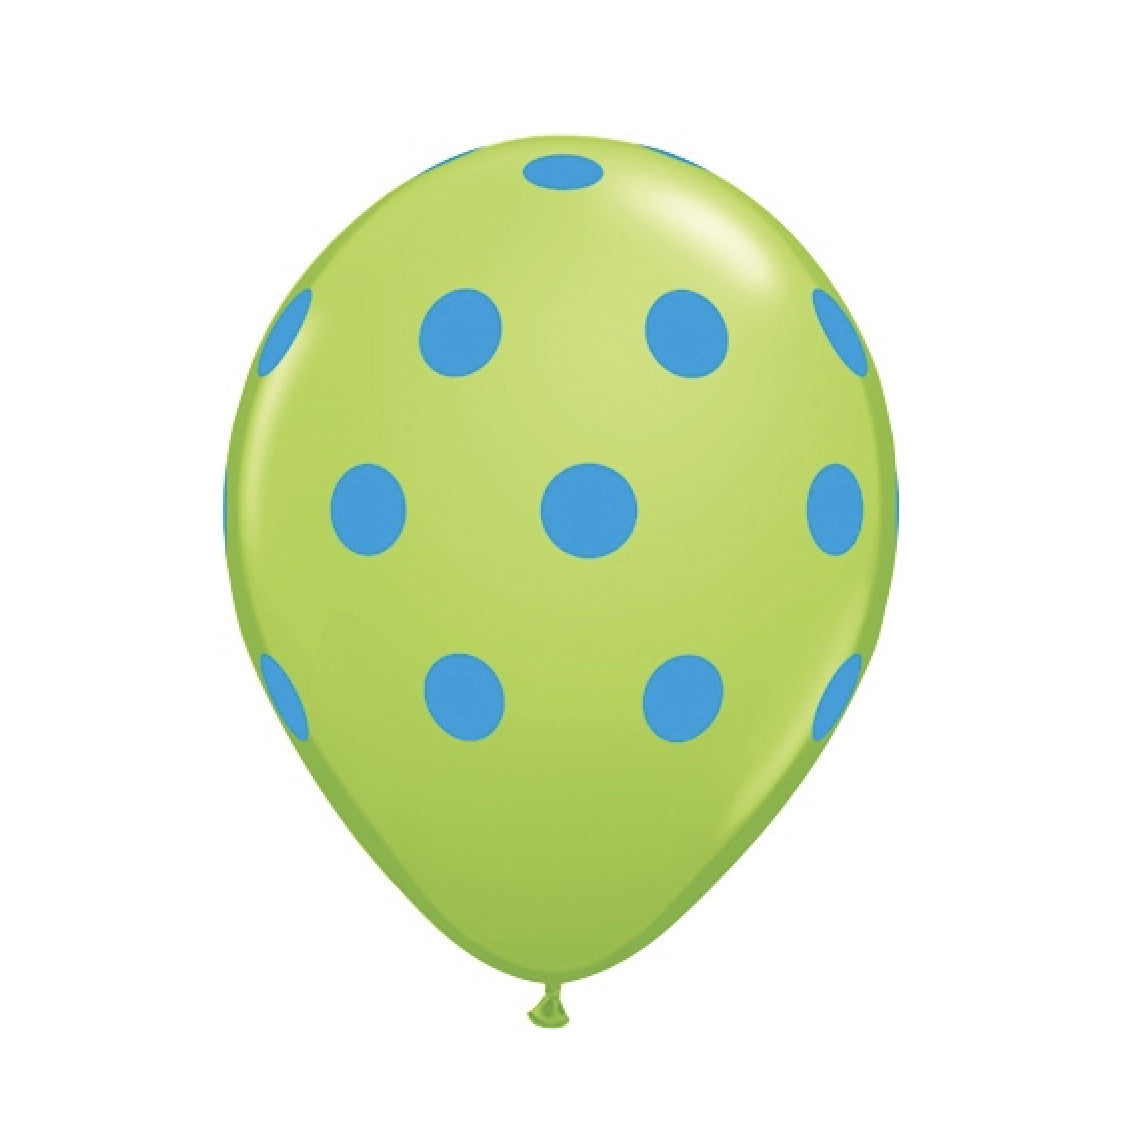 Big Polka Dots Colorful Balloons - Green & Turquoise, Surprize Enterprize, Putti Fine Furnishings